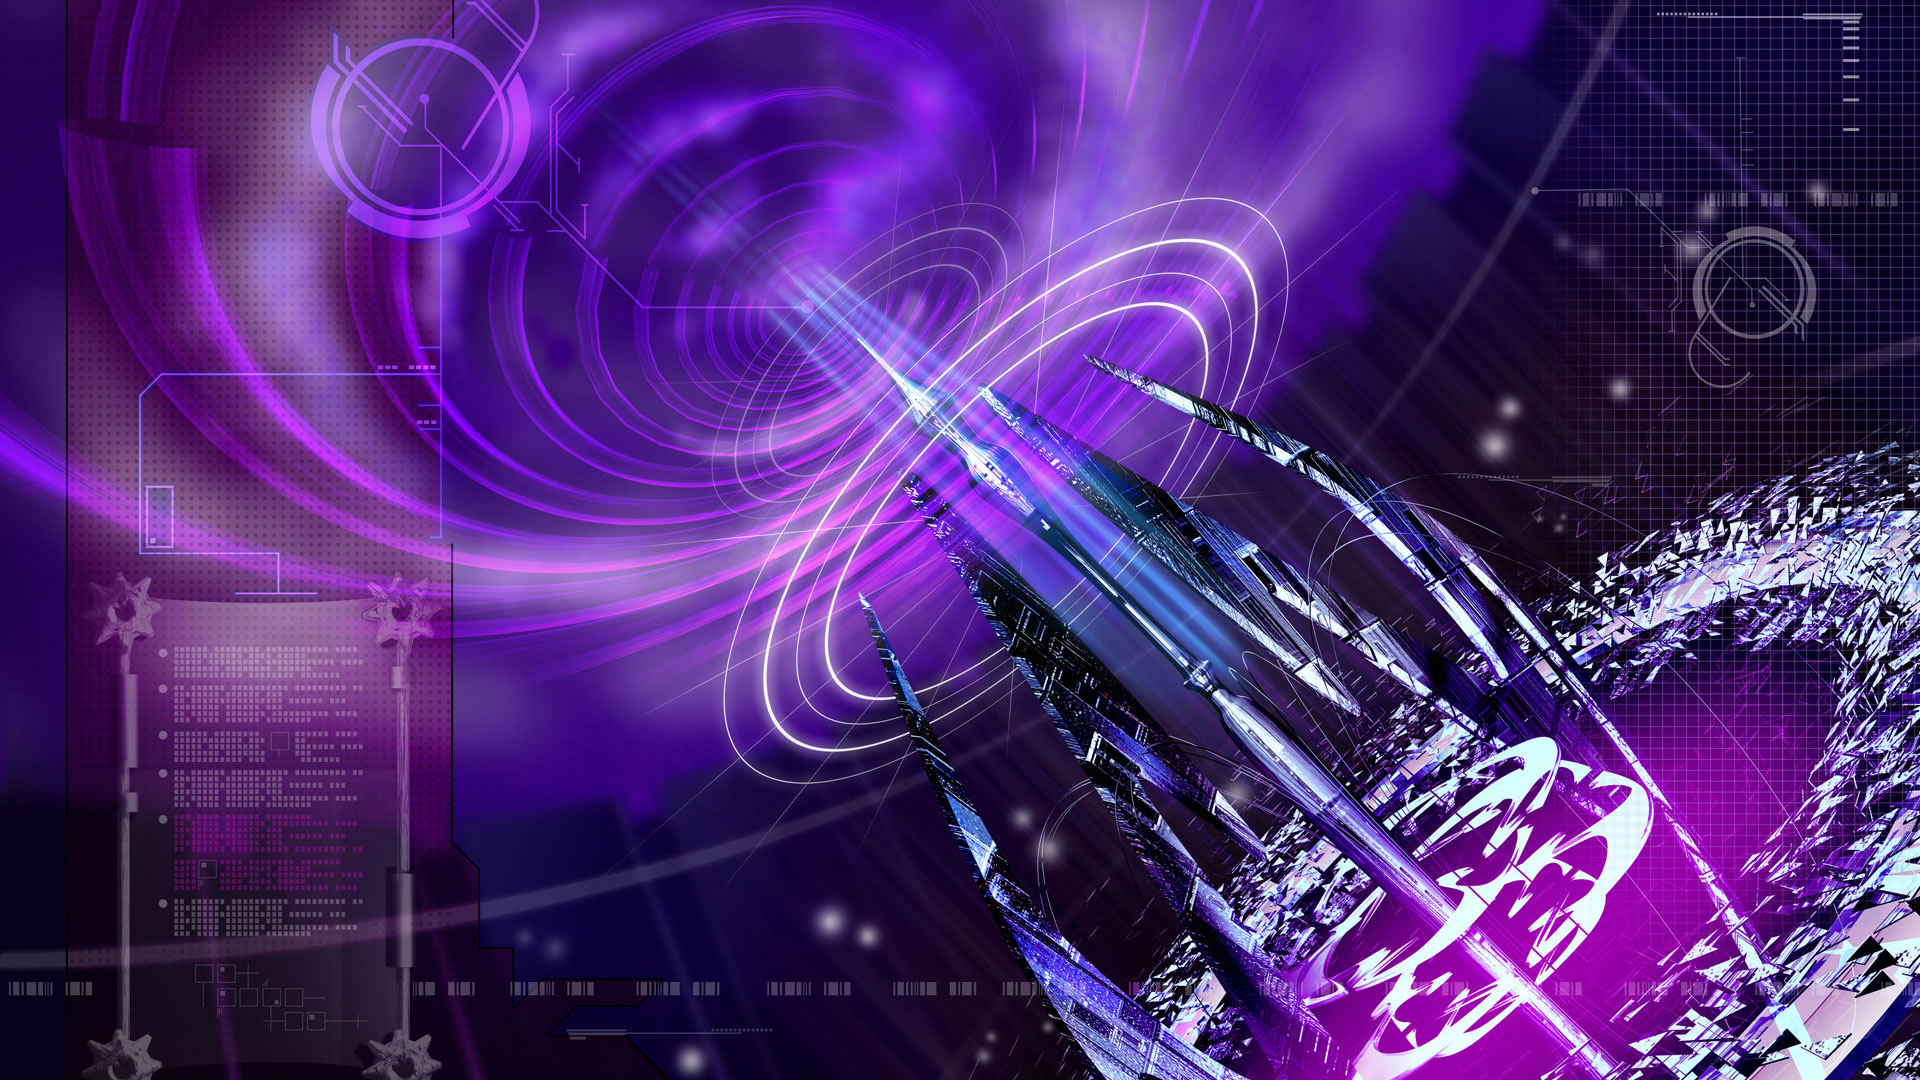 77 Pictures Of Purple Wallpapers On Wallpapersafari